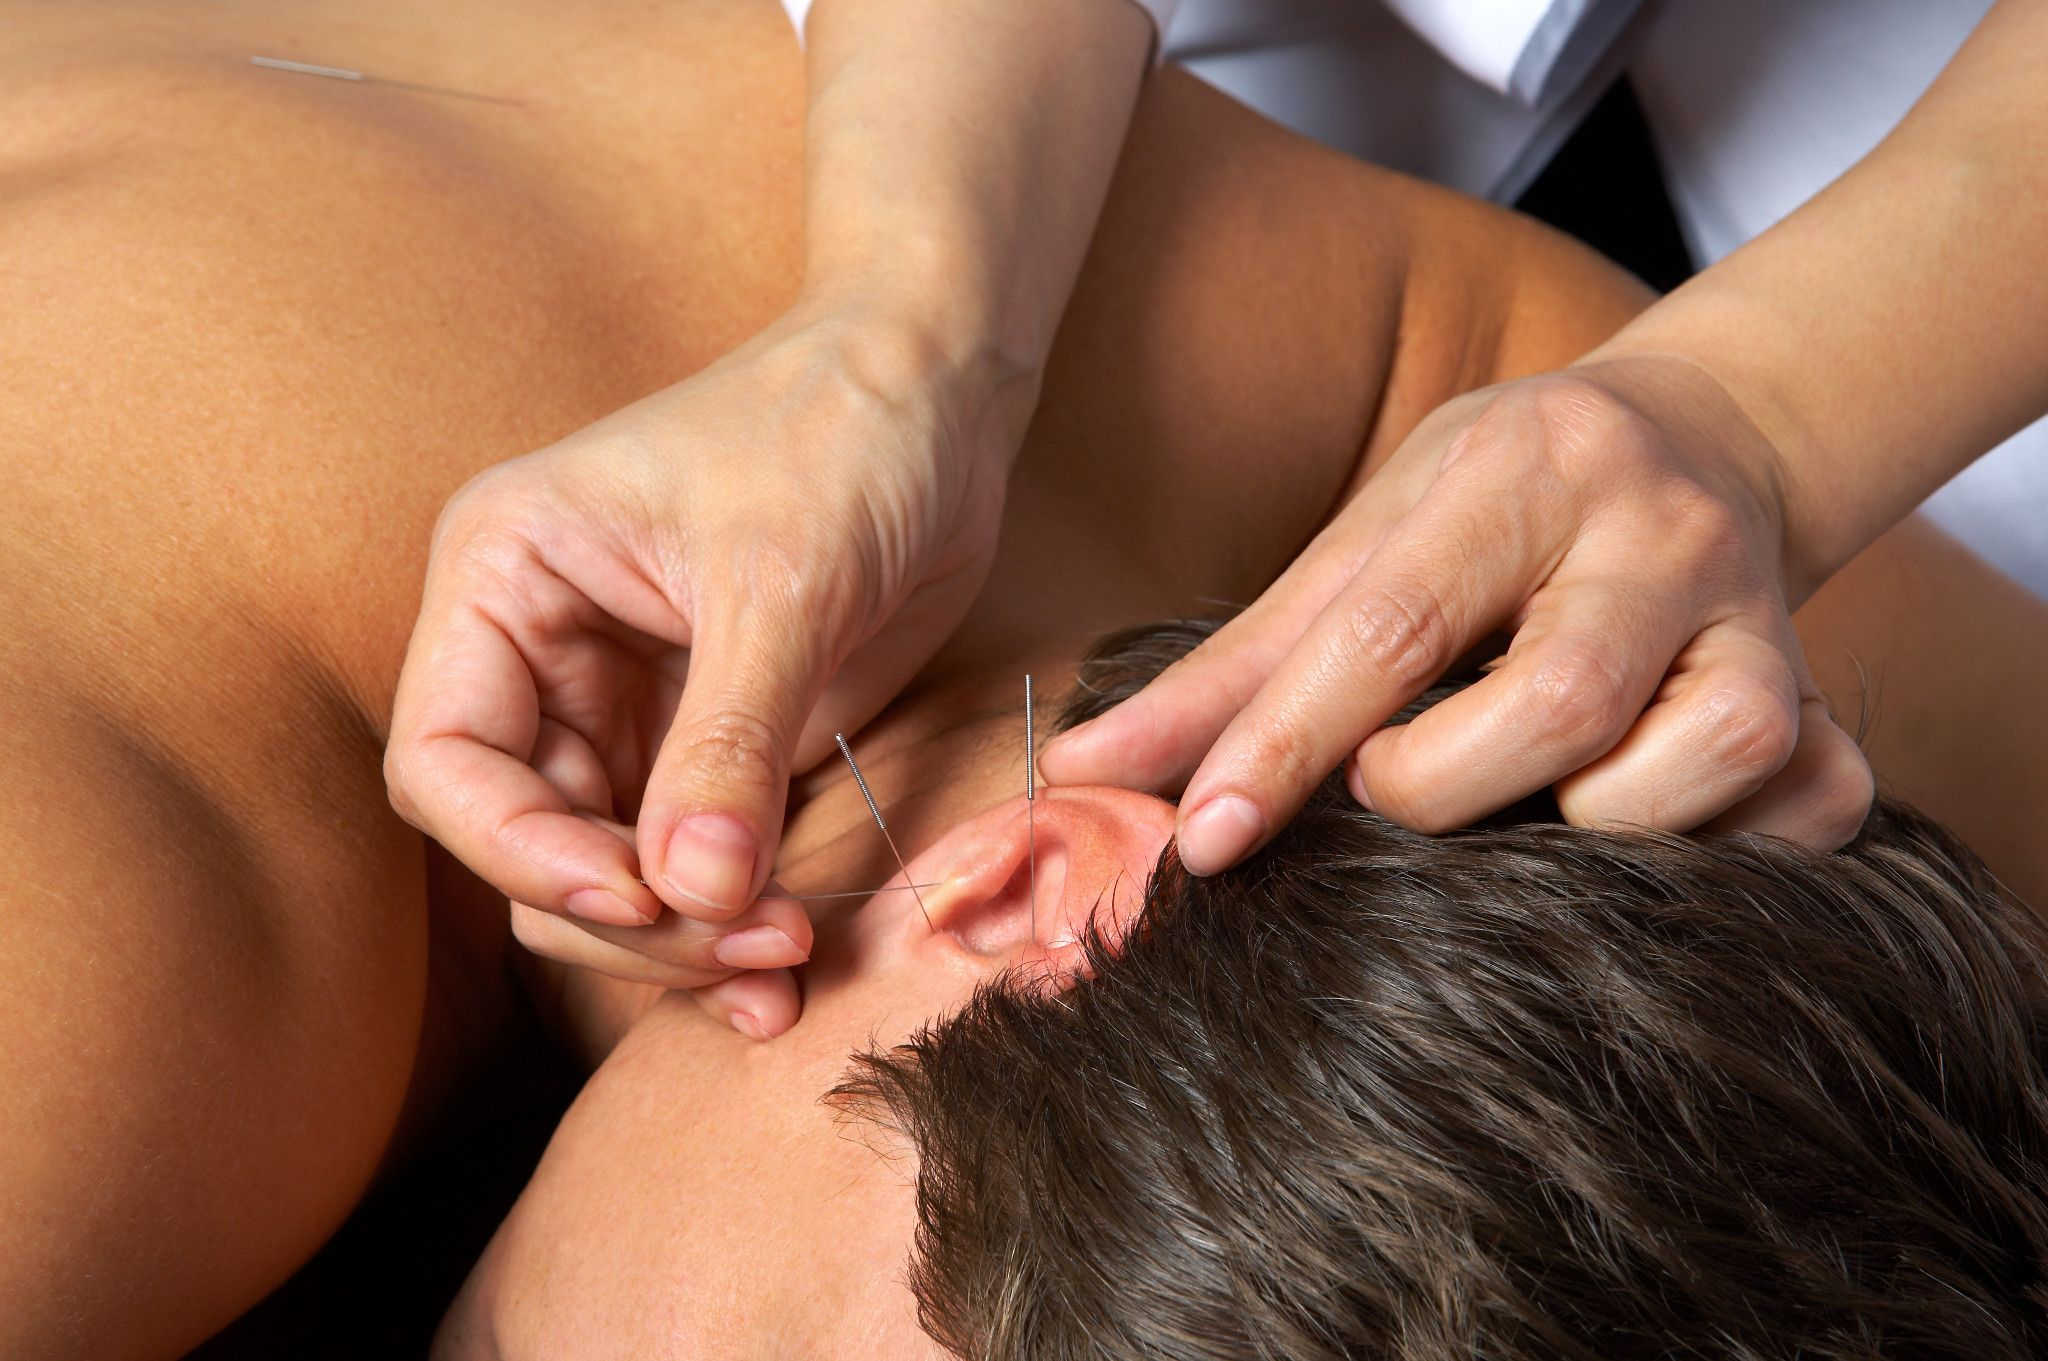 The Best Alternative Therapies to Treat Back and Neck Pain